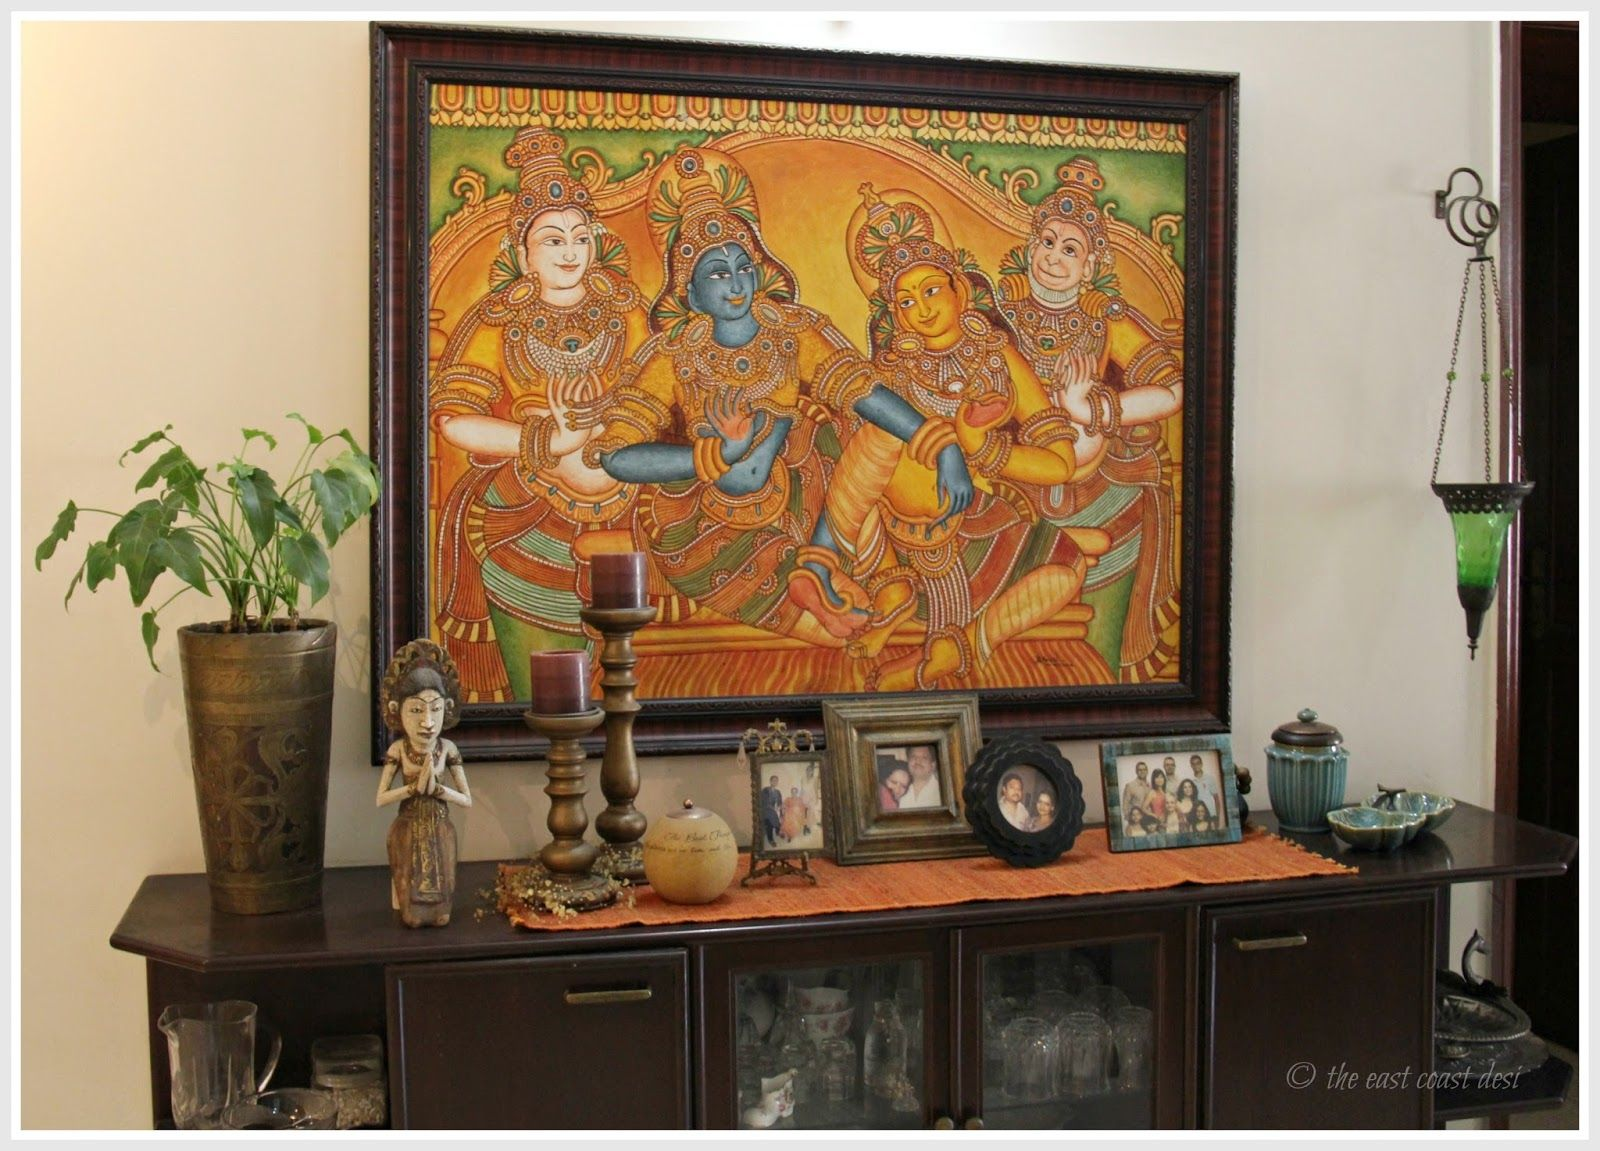 the east coast desi living with what you love home tour for tucked away from the cacophonous buzz of metropolitan bengaluru the eclectically charming home of kanthi